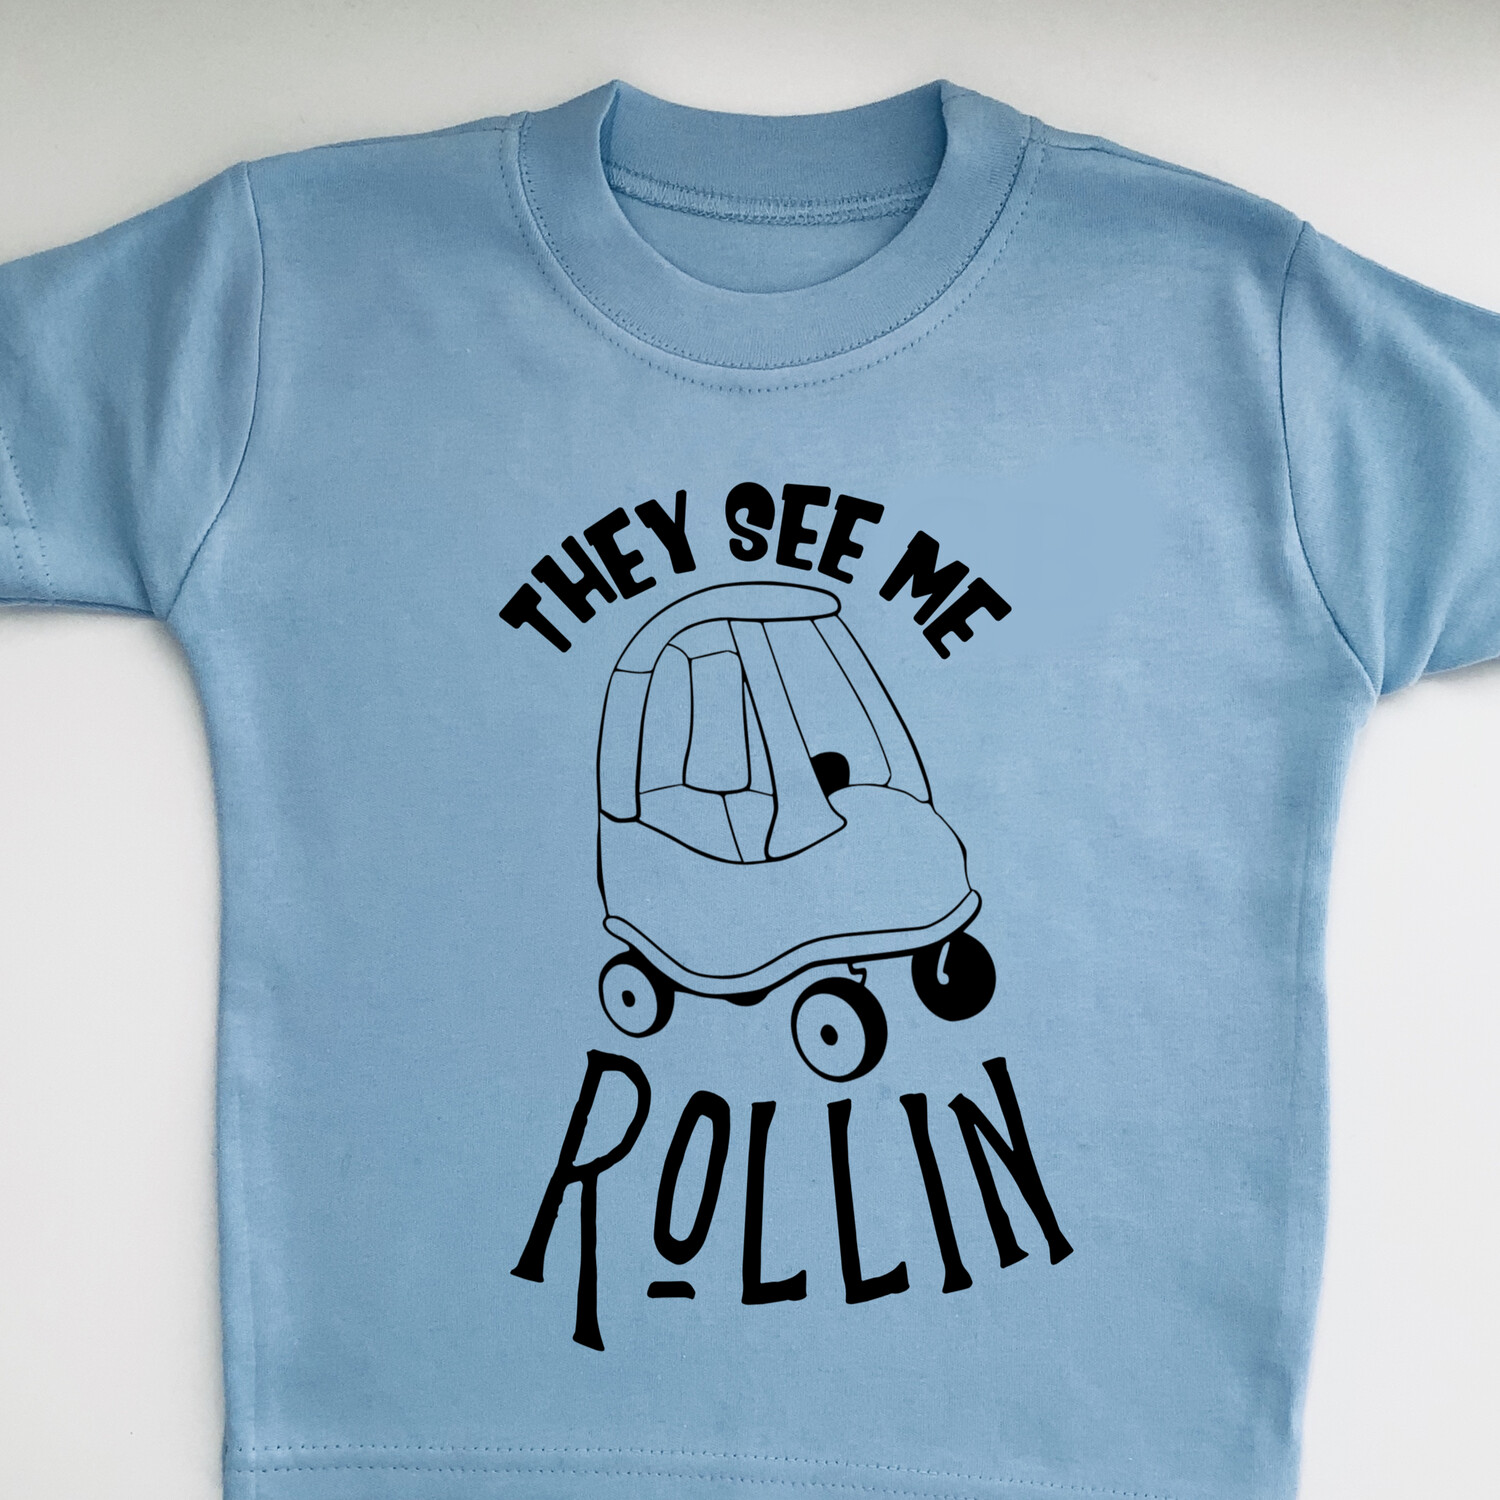 They See Me Rollin tshirt